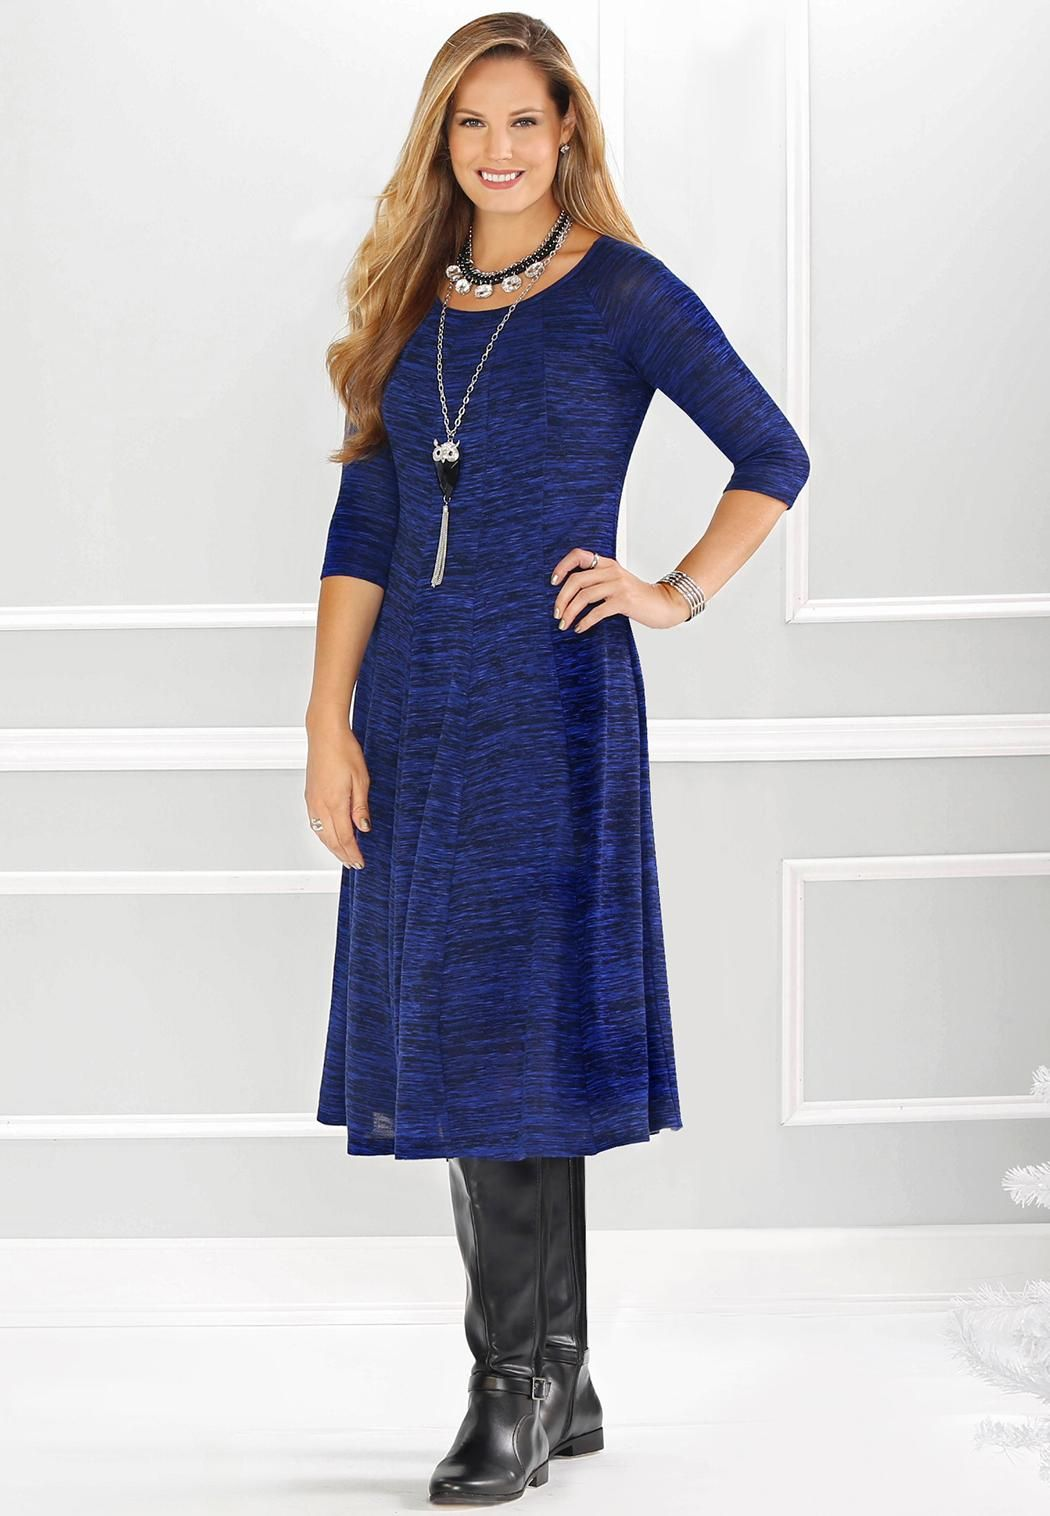 d9a402fdf65 Marled Knit Dress - Plus Dresses Cato Fashions